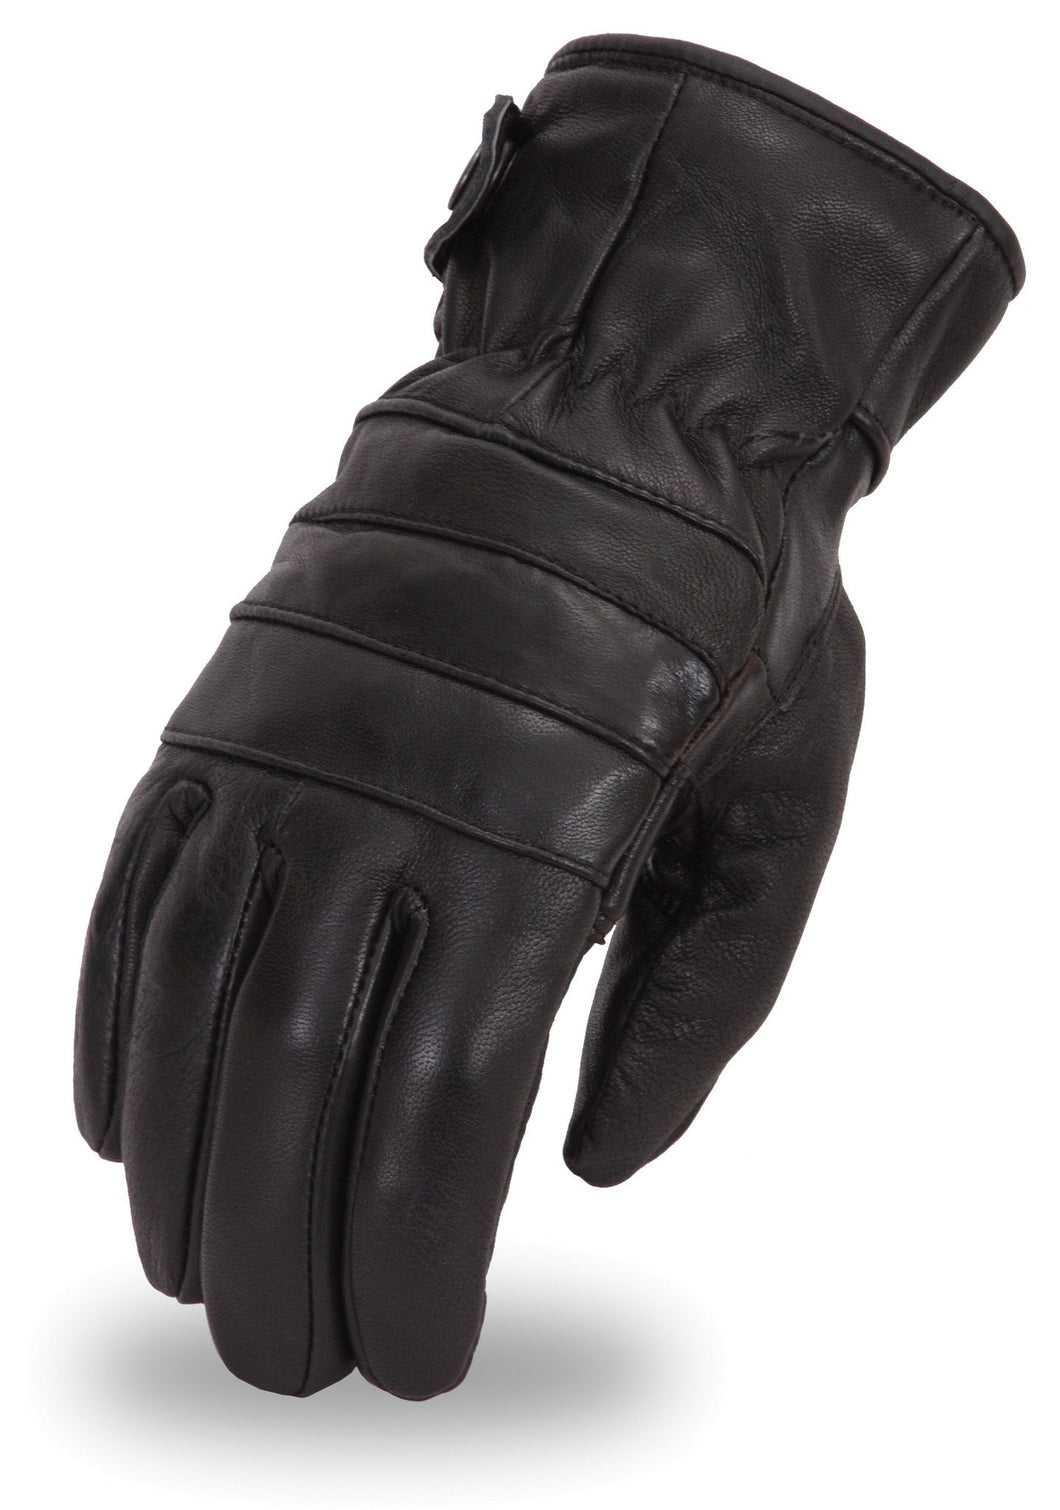 Performance Insulated Touring Glove Sheep | SKU GRL-FI174GL-FM - Ghost Rider Leather